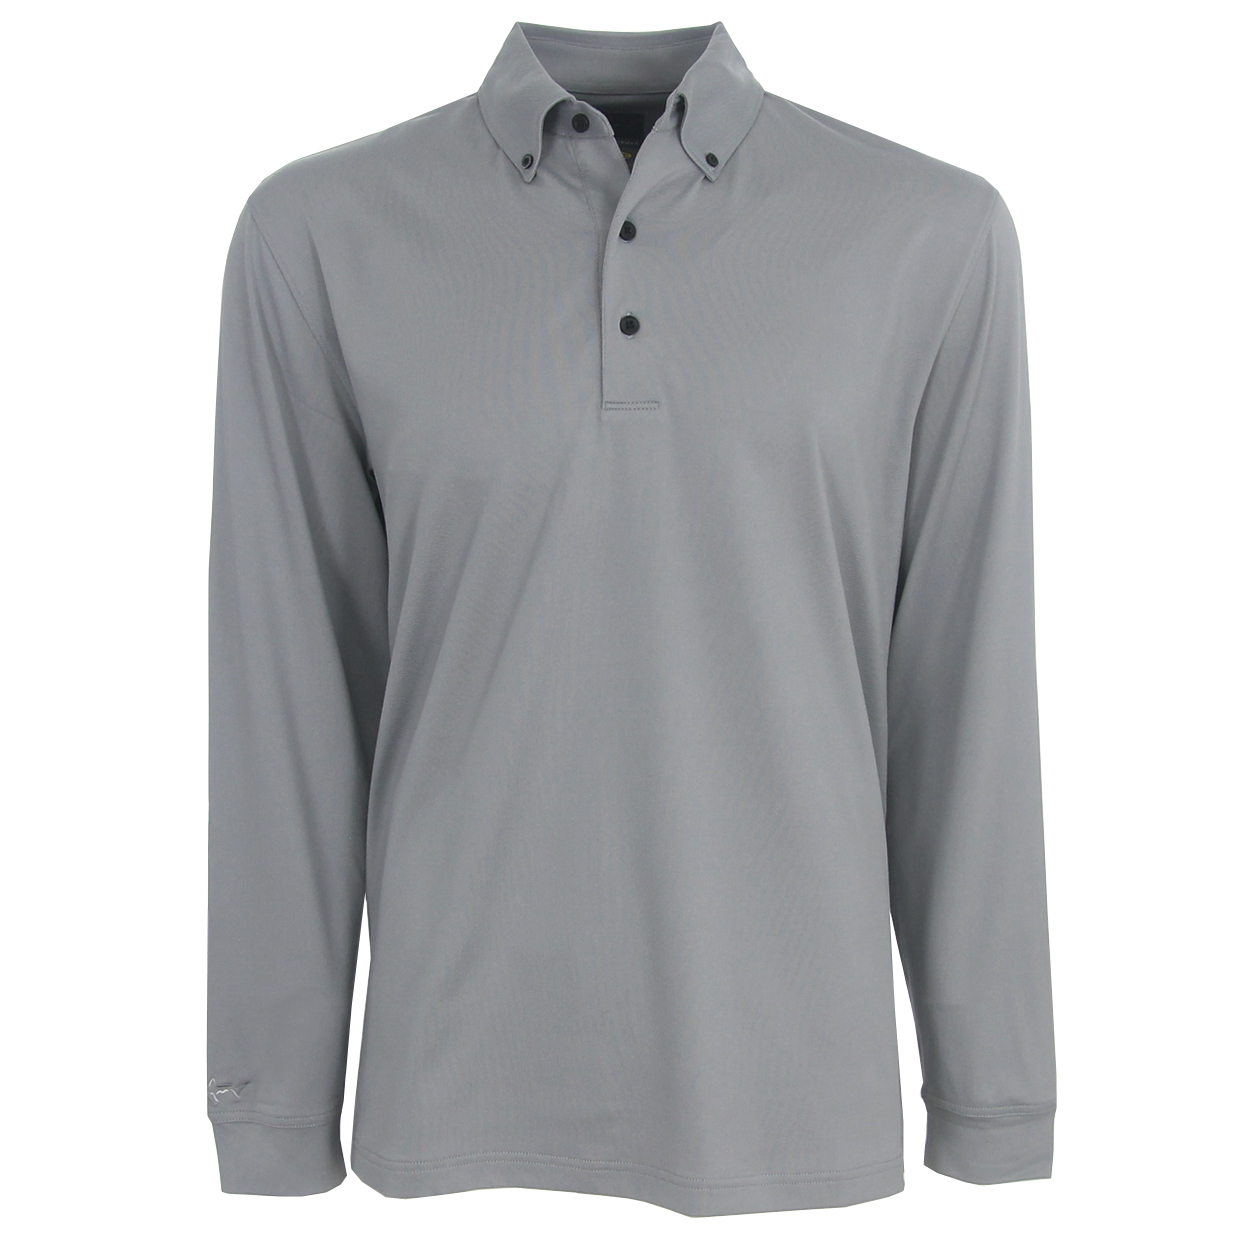 Greg norman weather knit long sleeve solid polo golf shirt for Long sleeve golf polo shirts